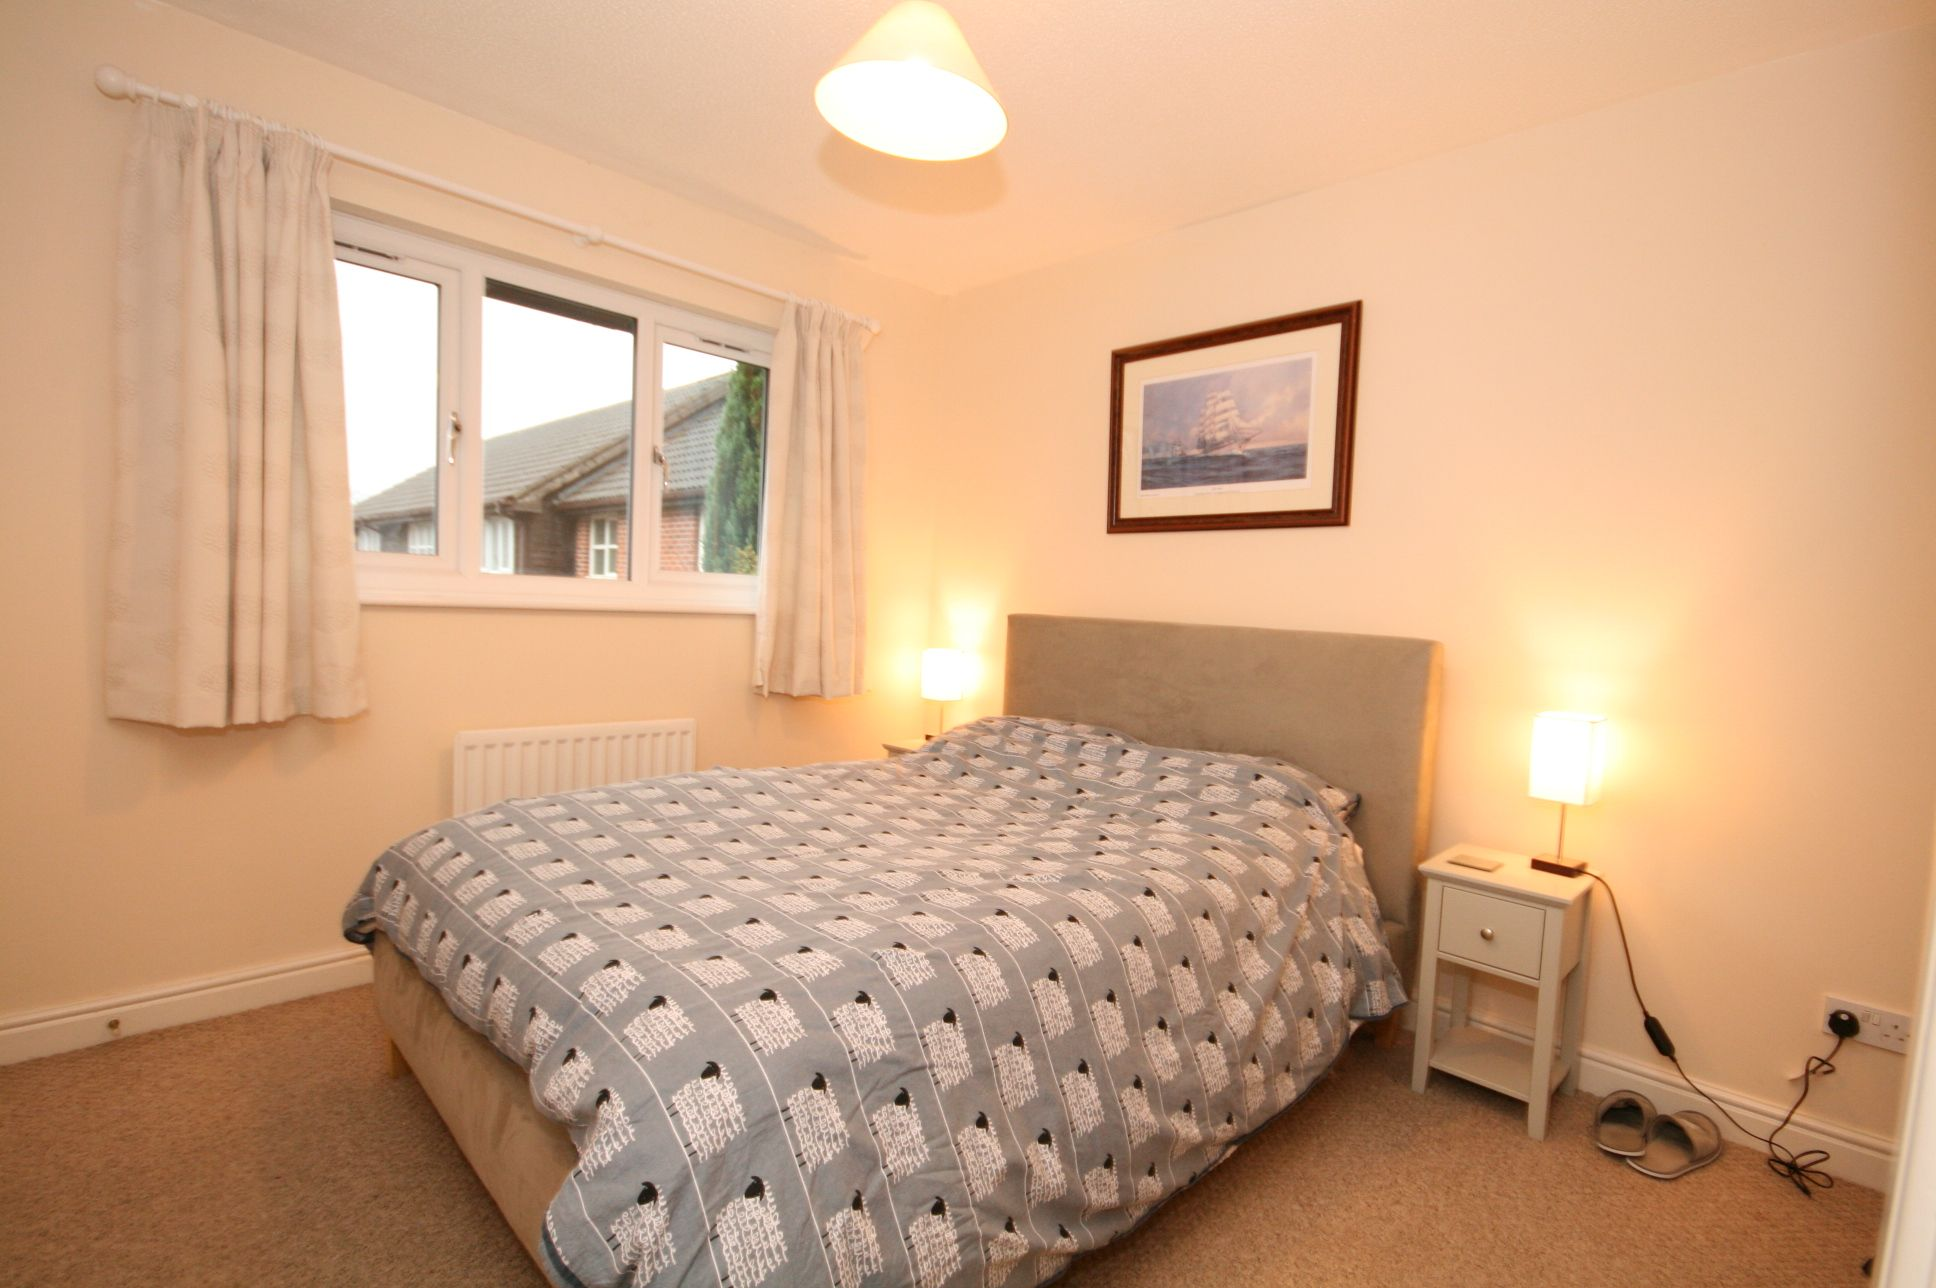 2 Bedroom End Terraced House For Sale - Bedroom 1